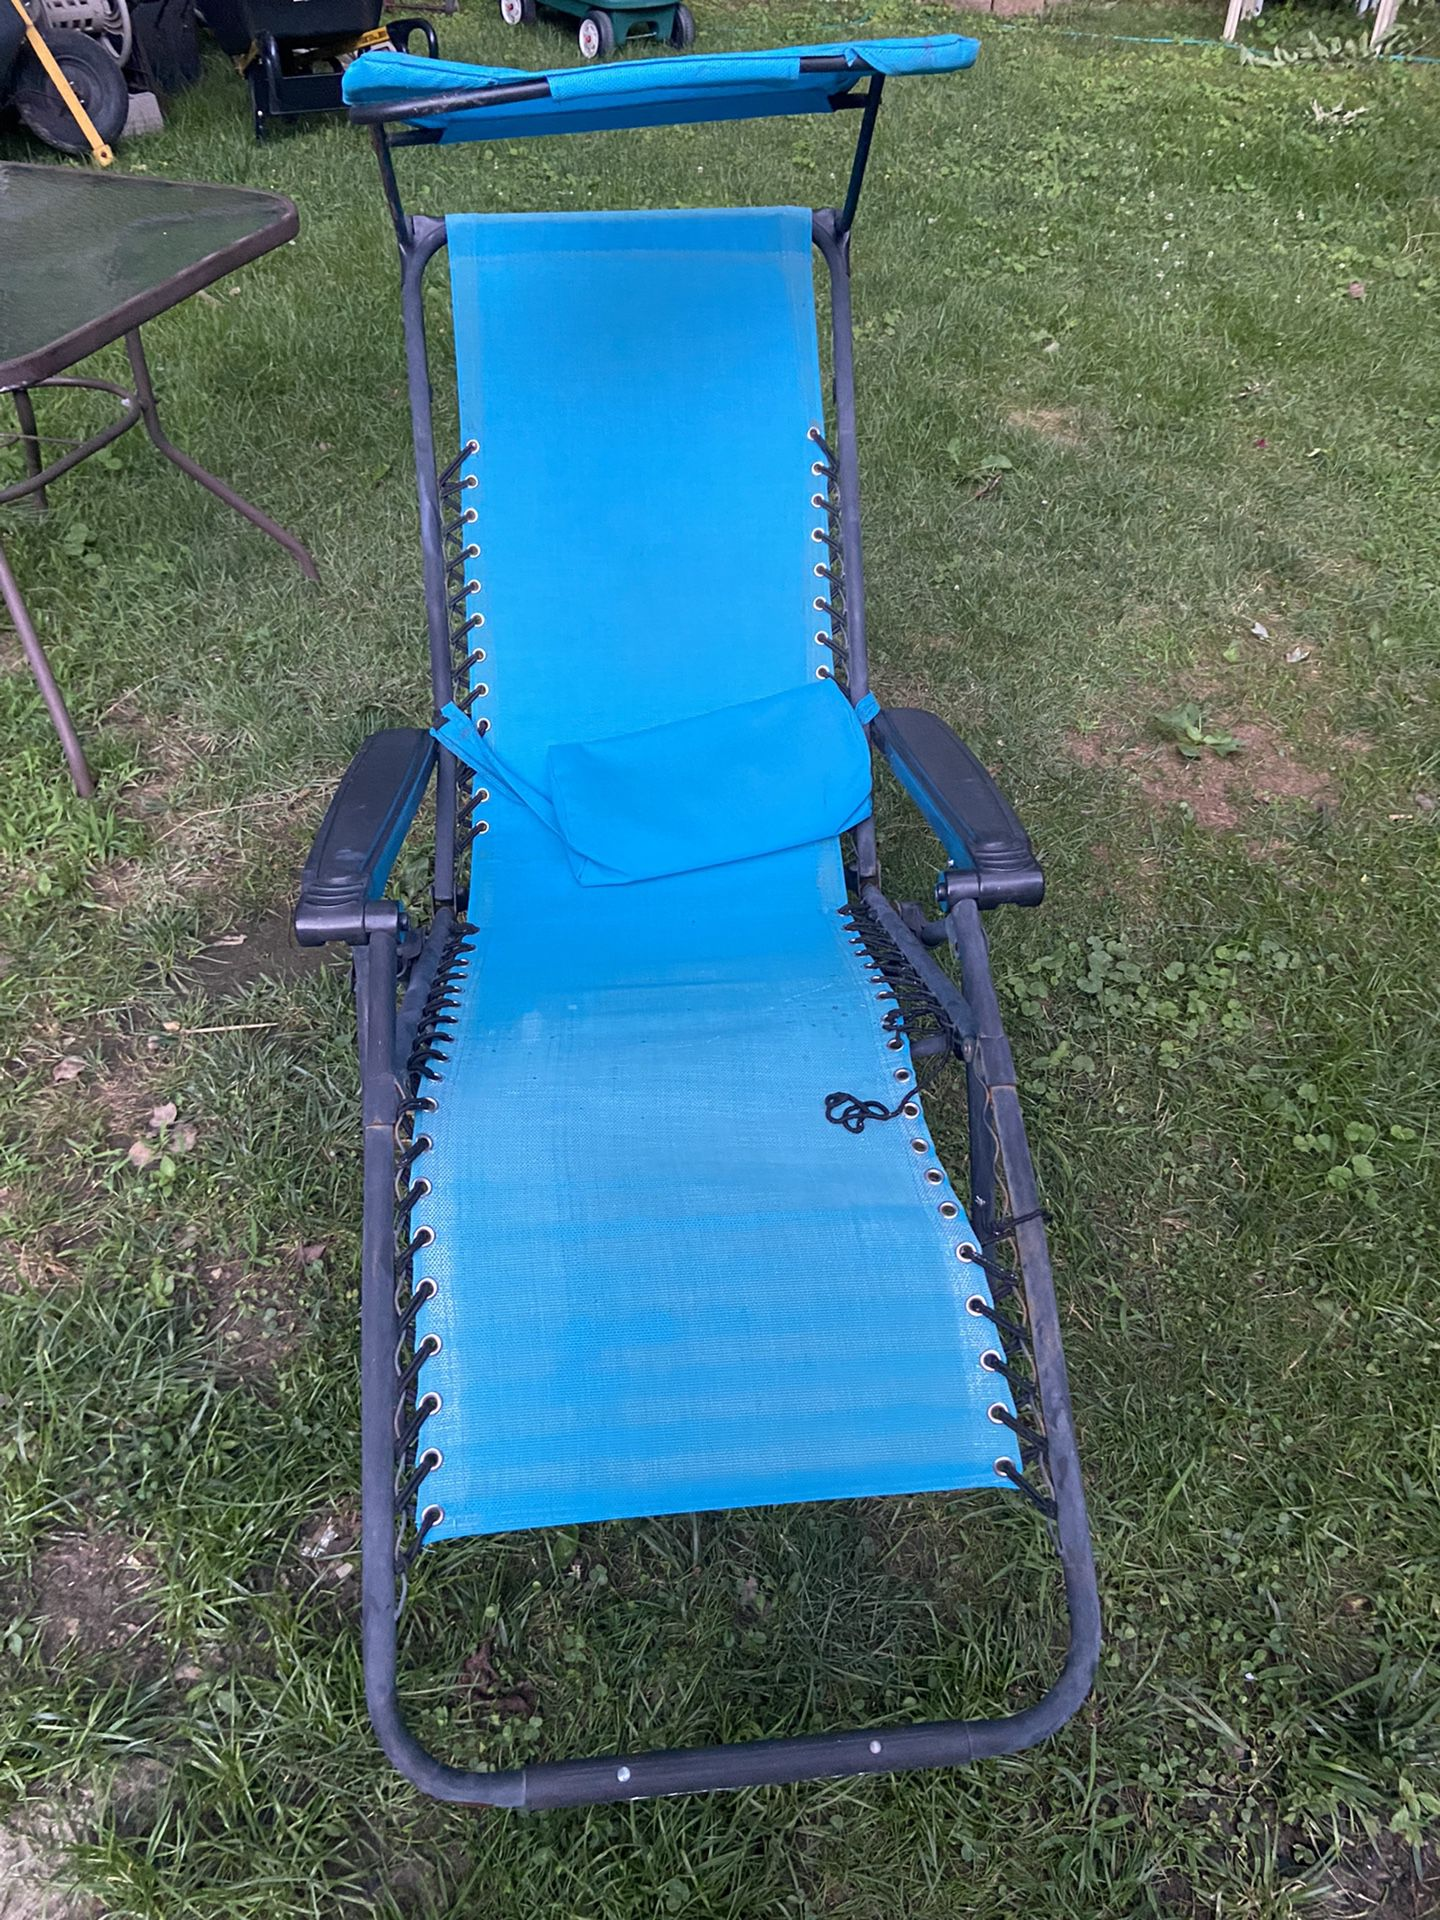 Yard Recliner  Chairs With Umbrella  $40.00